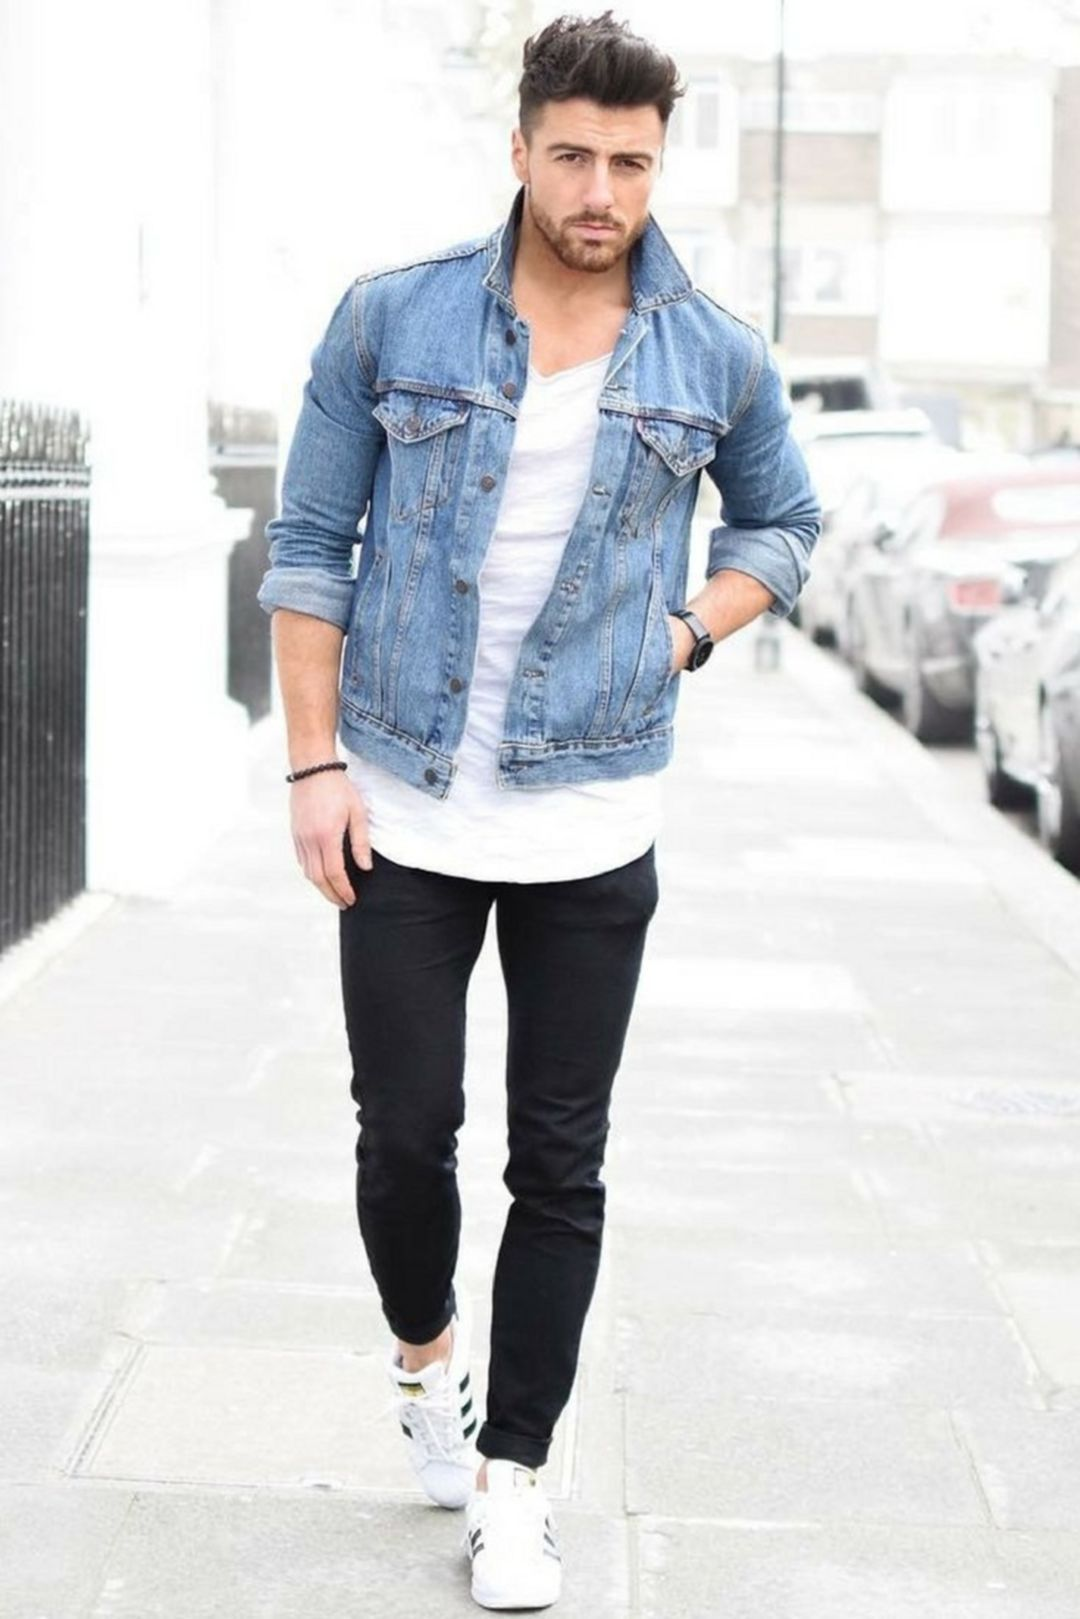 Jean Jacket Outfits For Men Fashions Nowadays Jean Jacket Outfits Denim Shirt Men Mens Outfits [ 1619 x 1080 Pixel ]